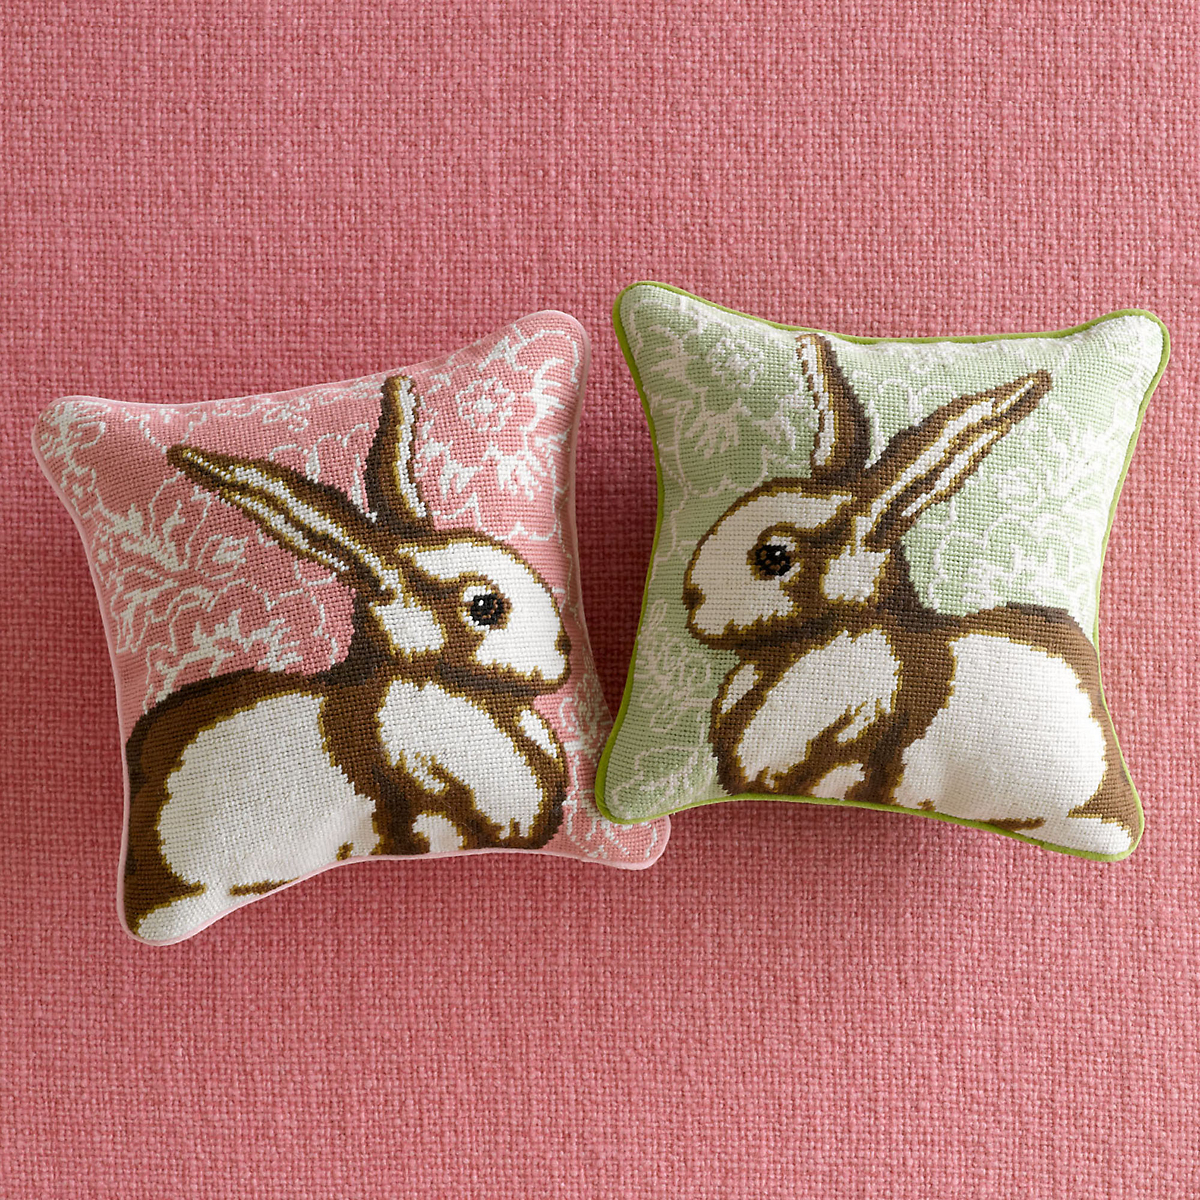 Needlepoint Easter Bunny Pillows Gump S